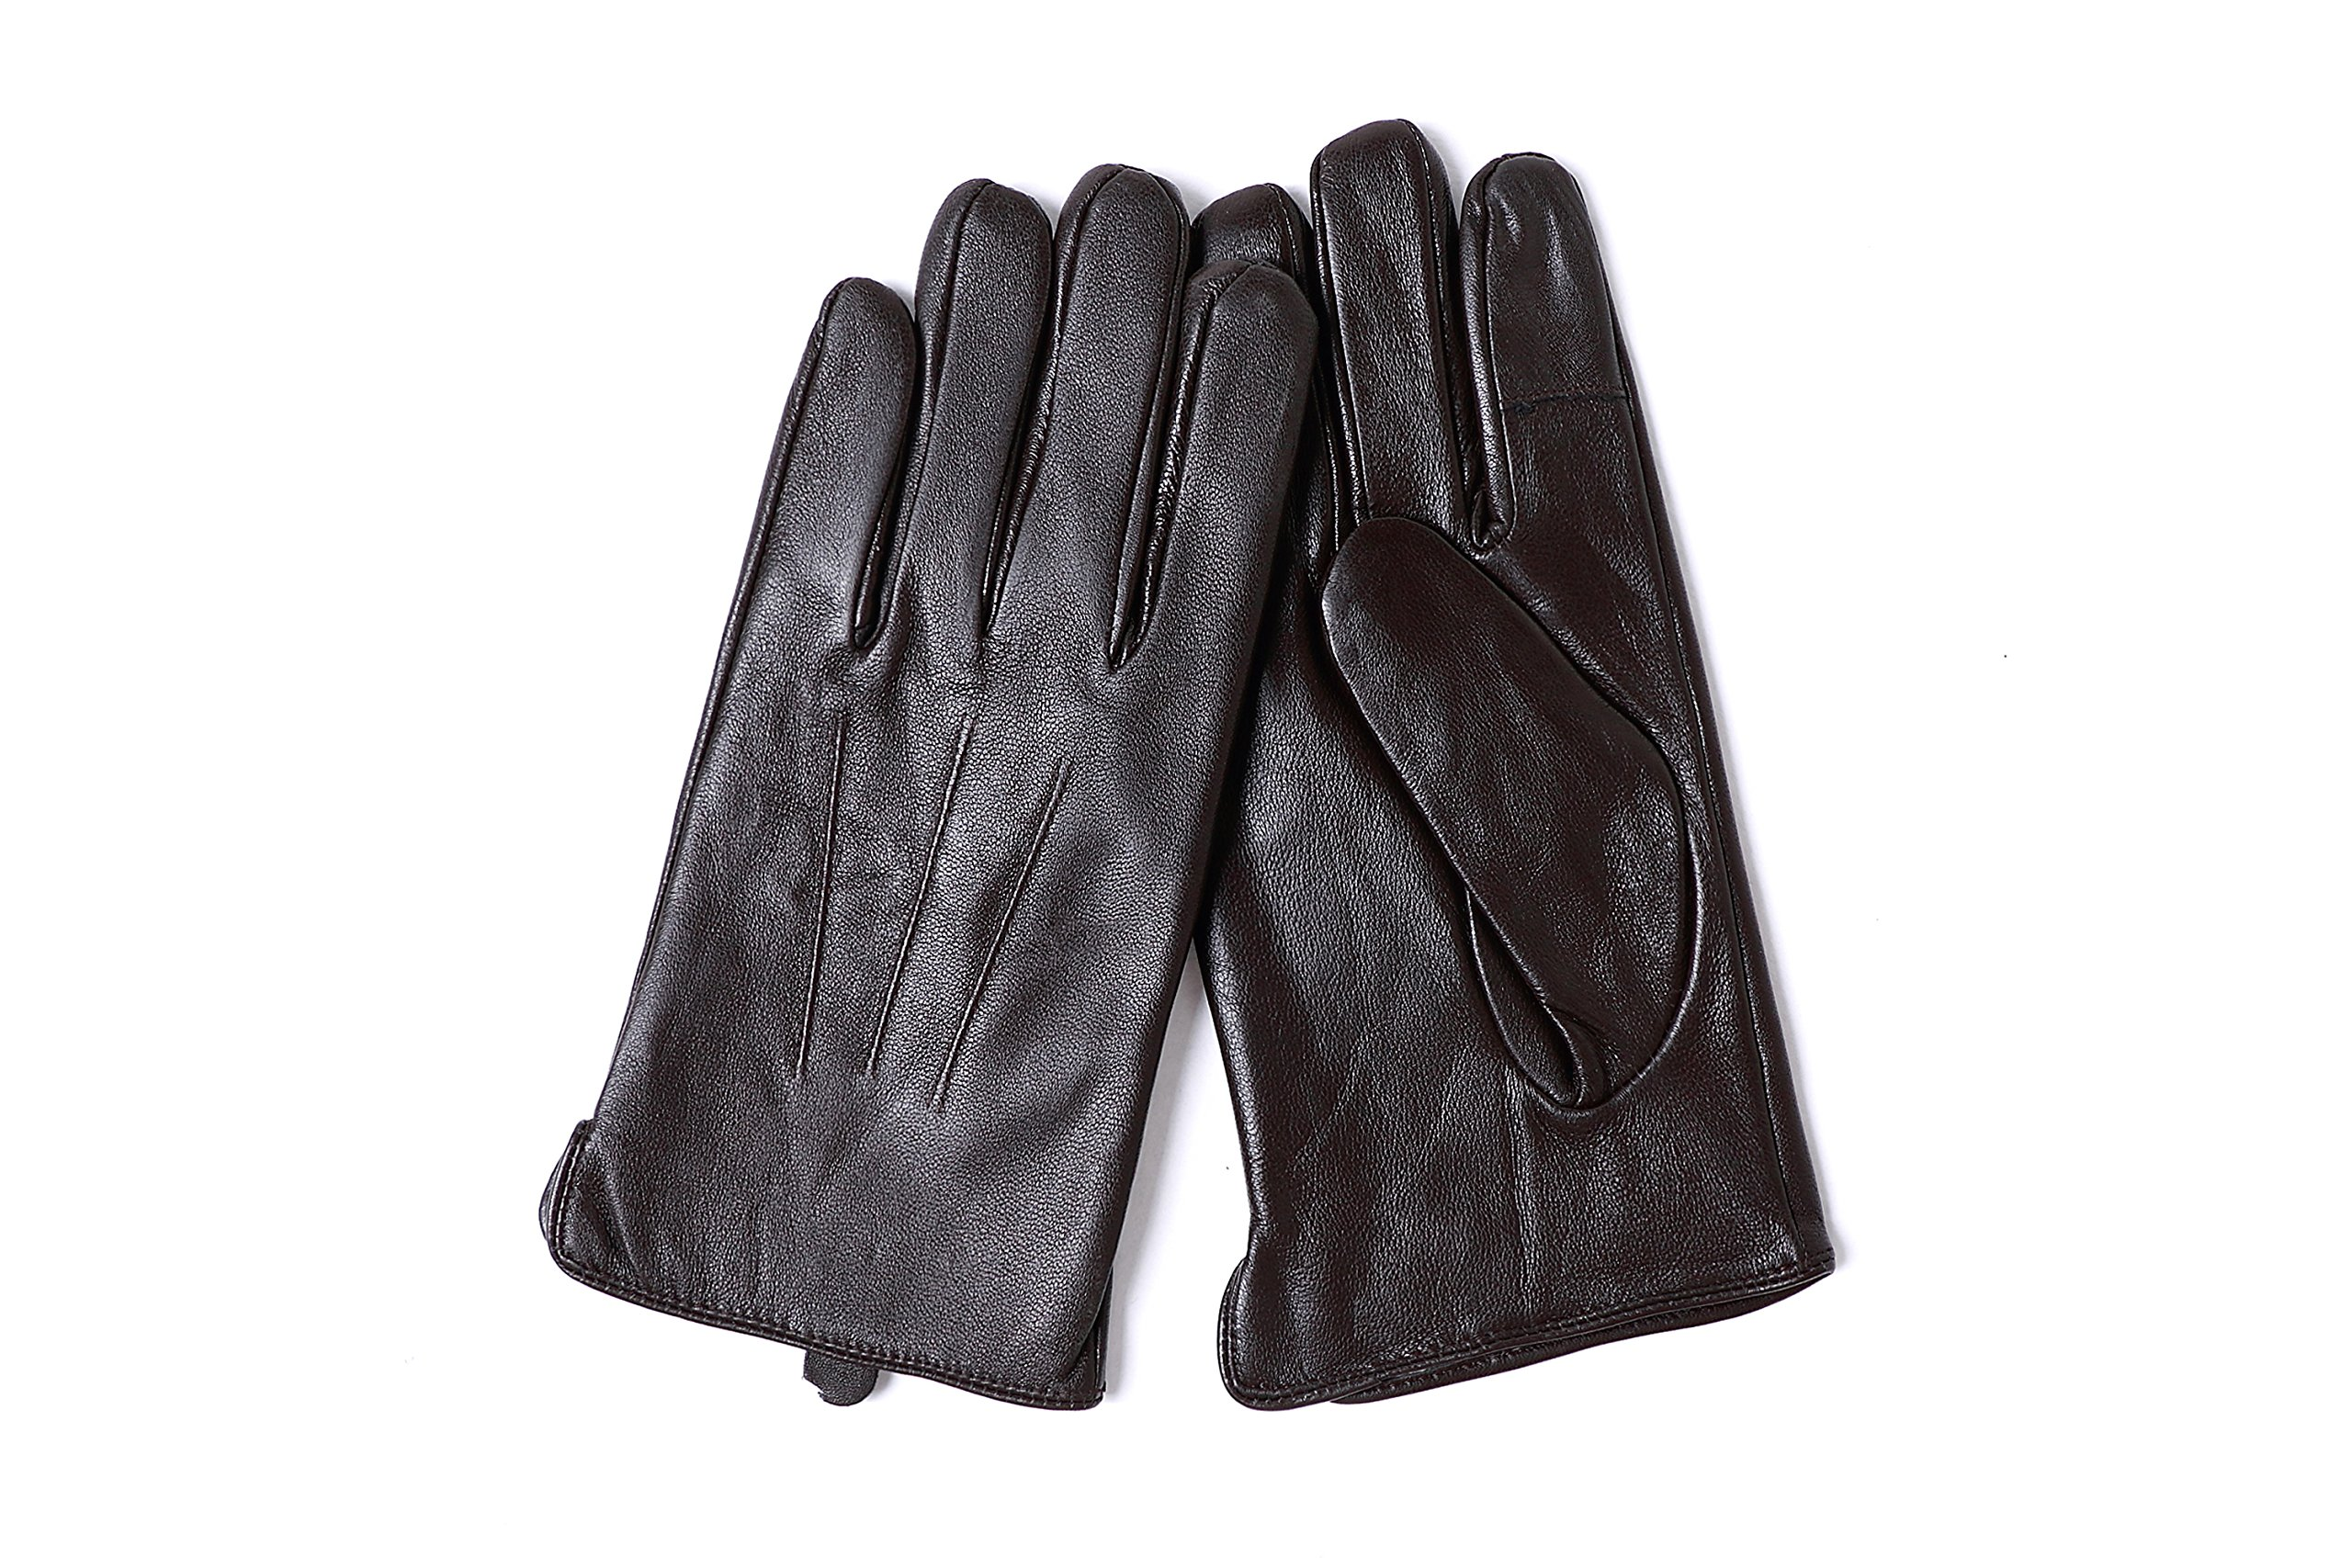 YISEVEN Men's Sheepskin Leather Gloves Three Points Wool Lined Real Luxury Design Soft Hand Warm Fur Heated Lining for Winter Stylish Dress Work Xmas Gift and Motorcycle Driving, Brown 095/Large by YISEVEN (Image #2)